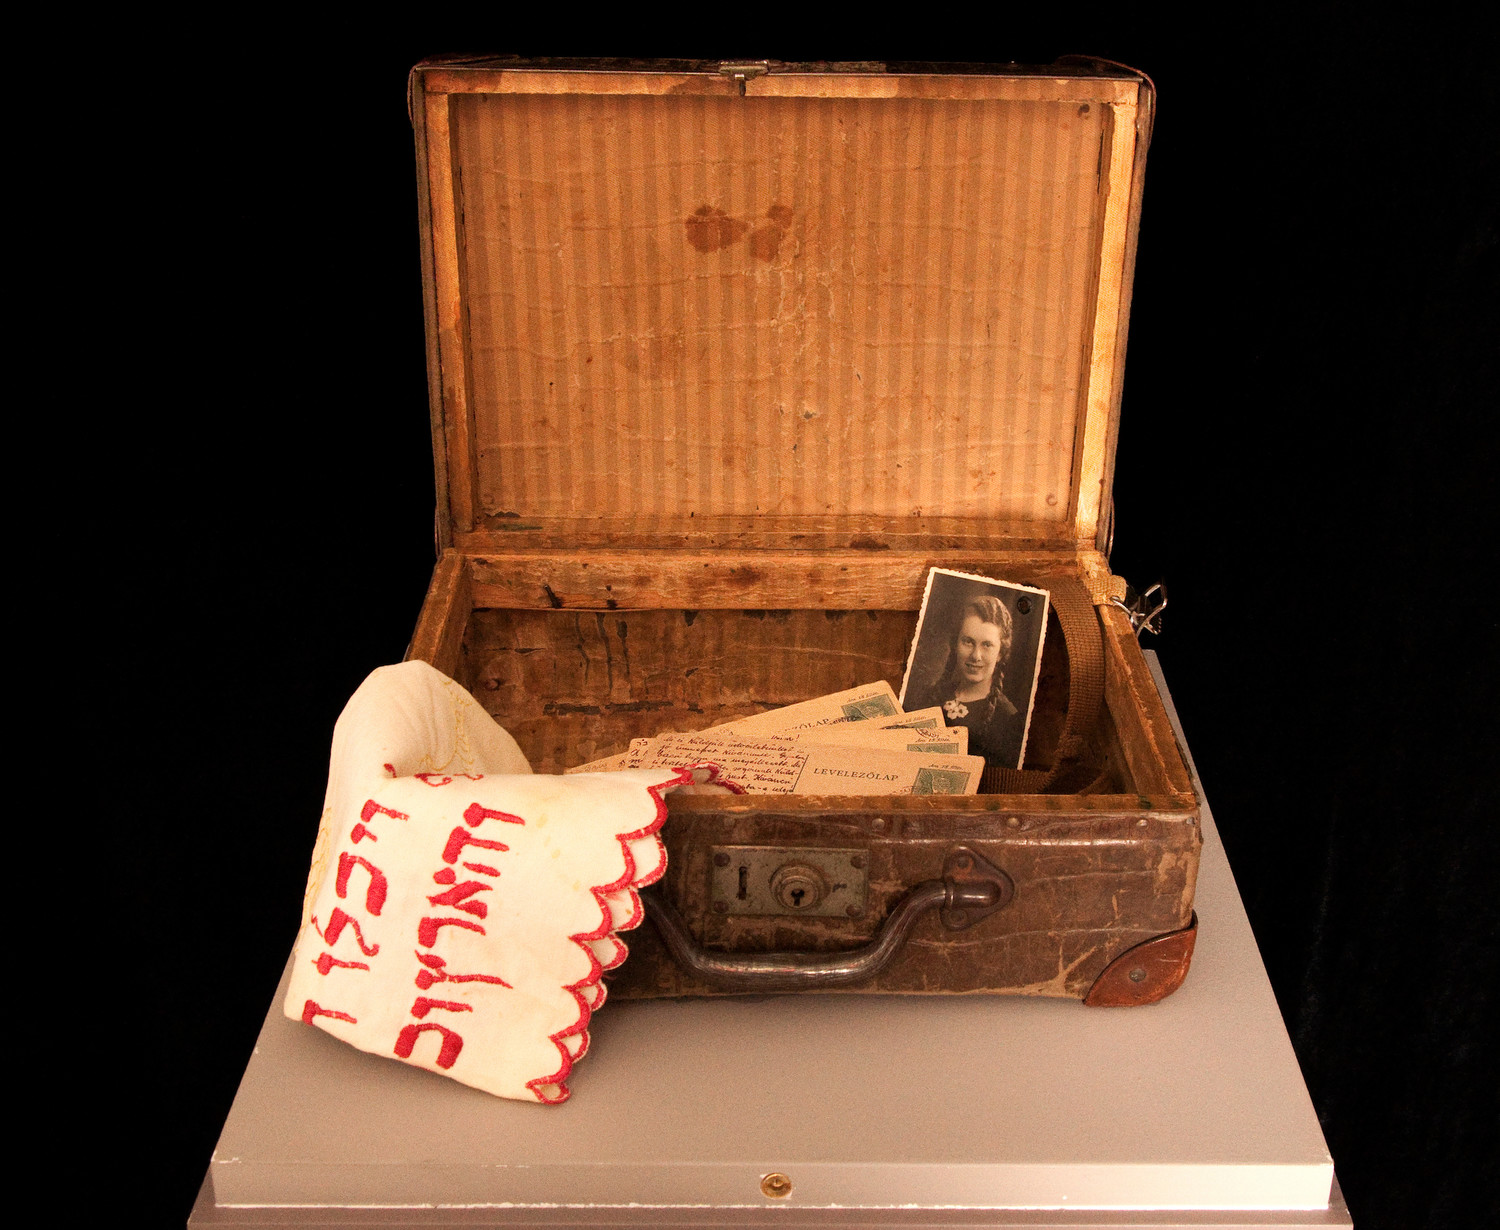 A small suitcase taken to the Budapest ghetto by a family named Horowitz, holding family photos, postcards and a challah cover, on display at the Amud Aish Memorial Museum.